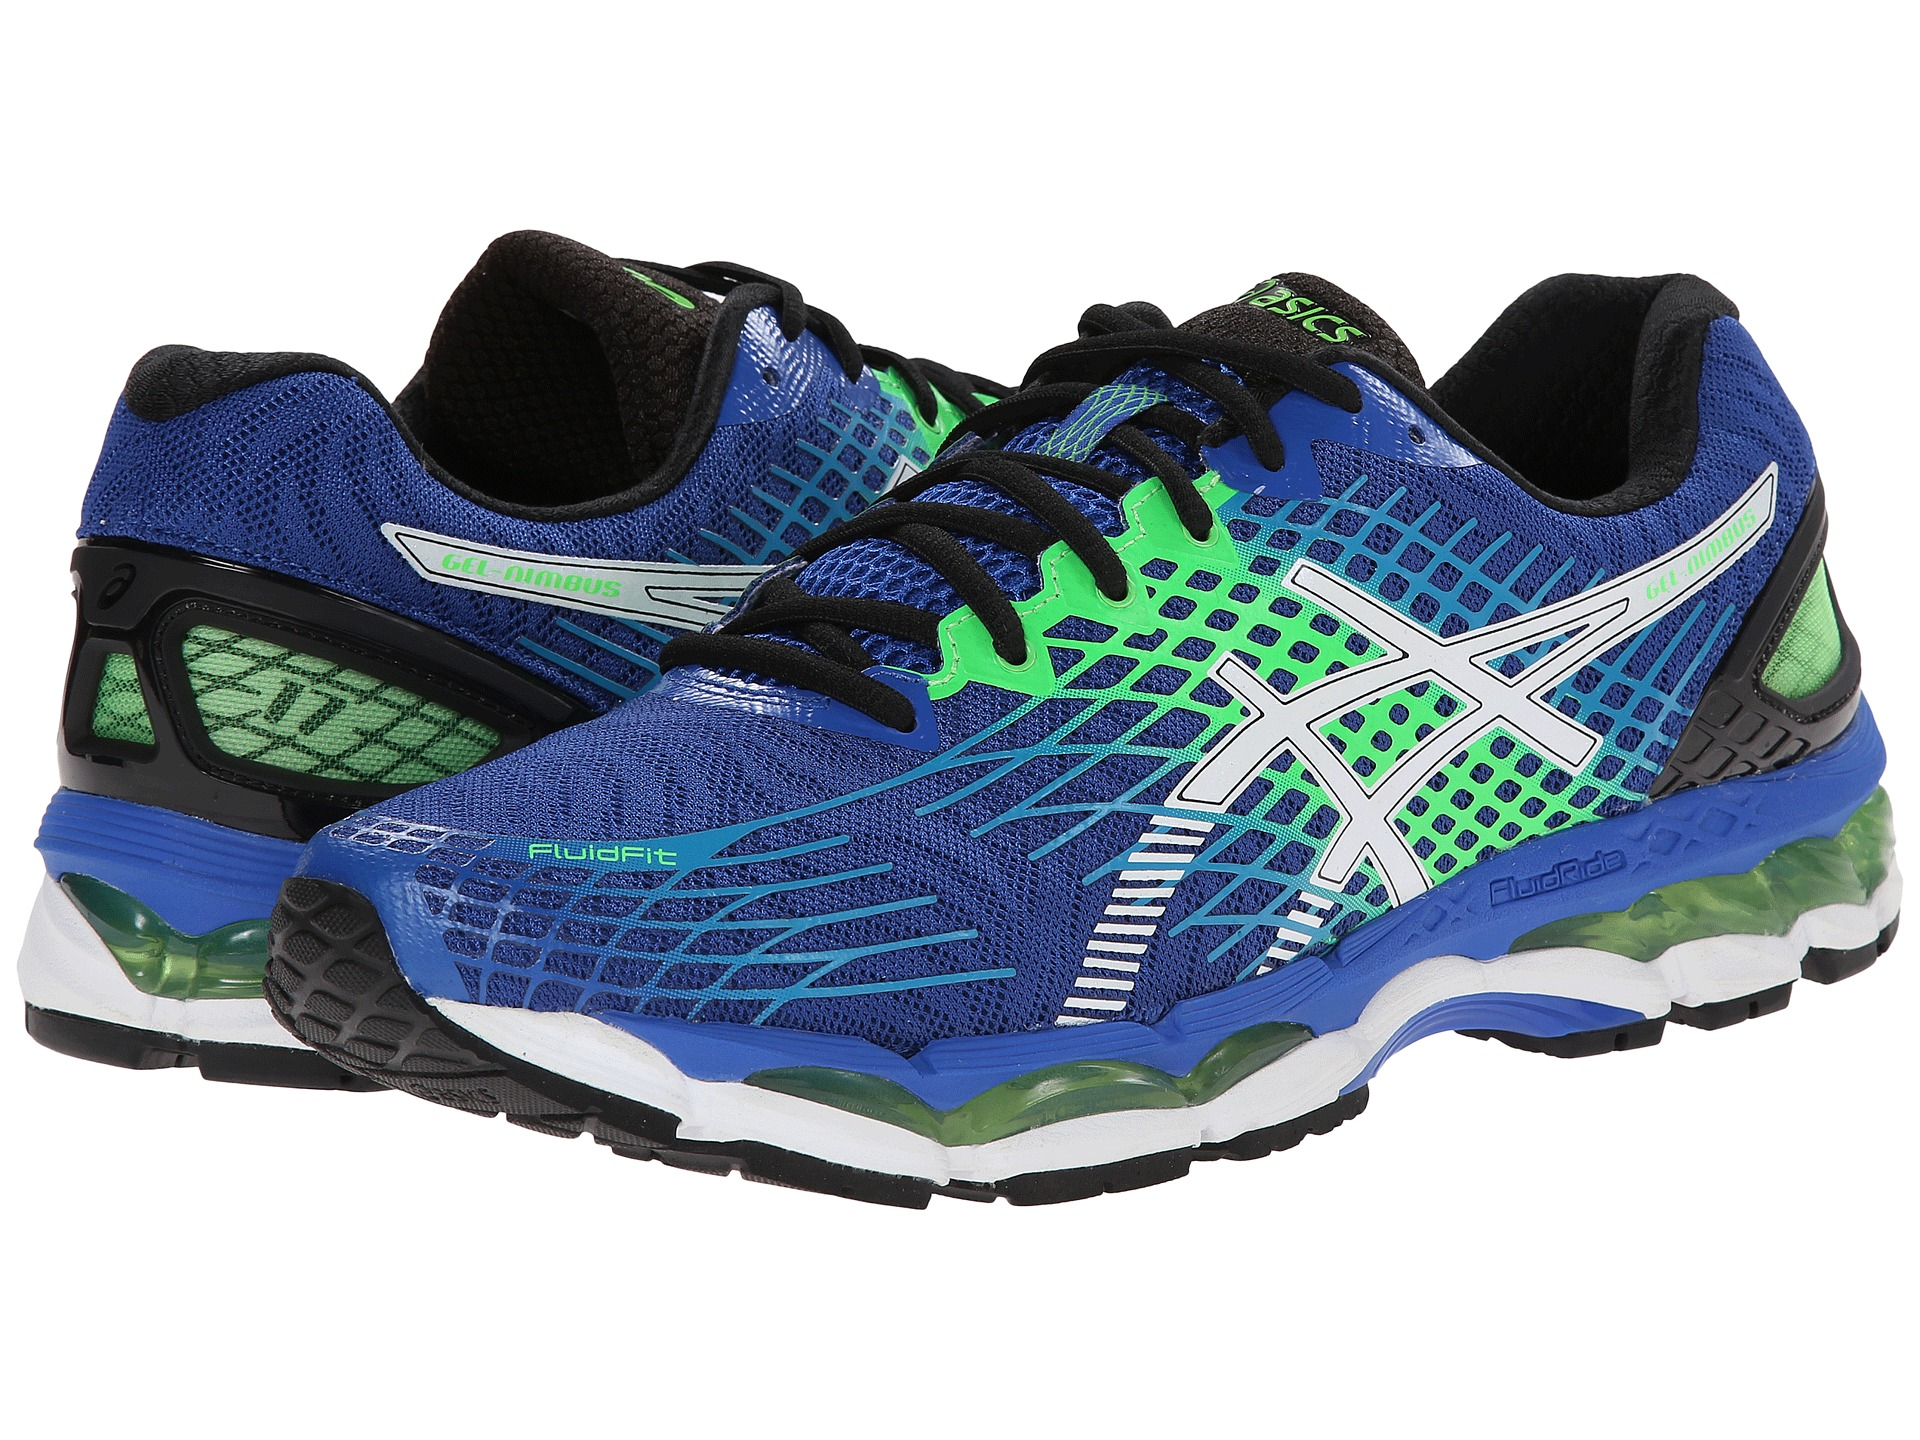 asics gel nimbus 17 royal white flash green free shipping both ways. Black Bedroom Furniture Sets. Home Design Ideas